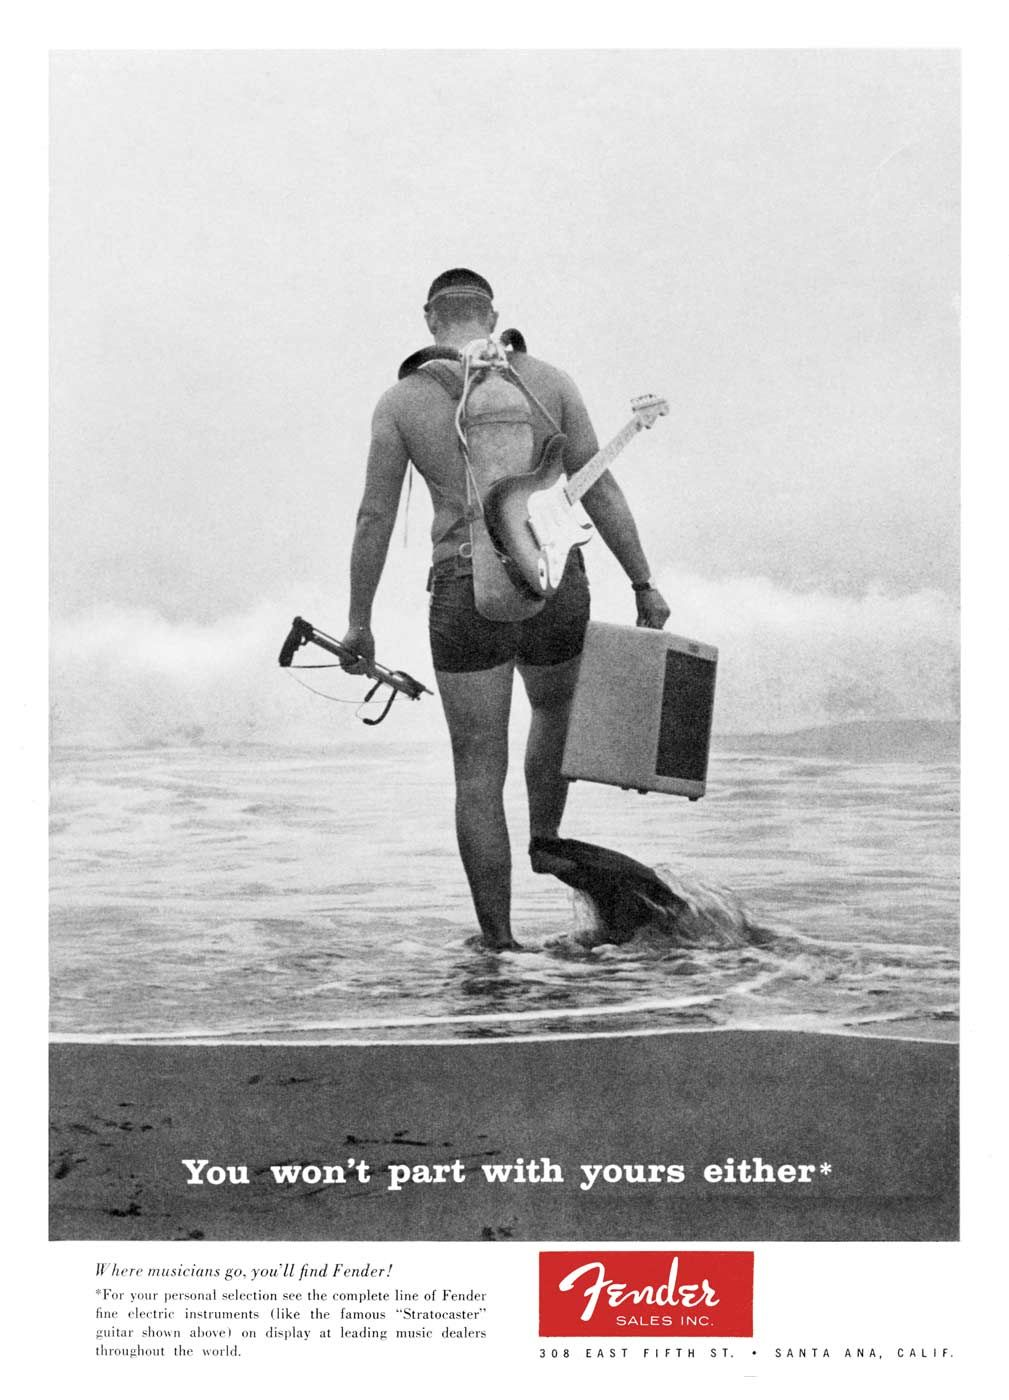 """Perhaps the most iconic image from Robert Perine's """"You won't part with yours either"""" Fender ad campaign. #60s"""